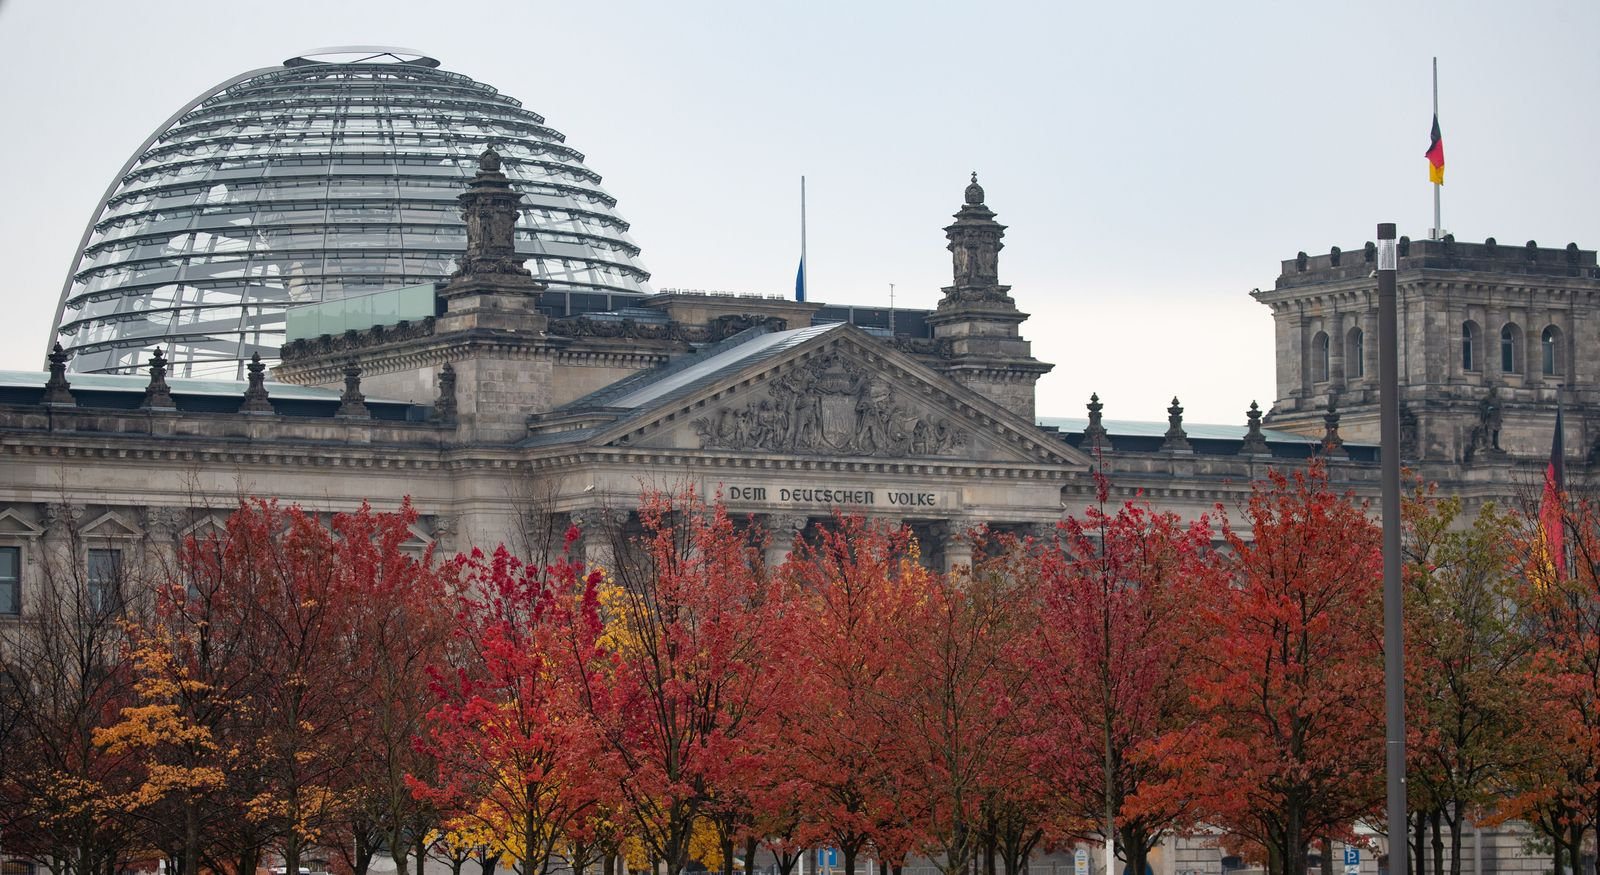 Sudden death of German Parliament Vice President Oppermann, Berlin, Germany - 26 Oct 2020